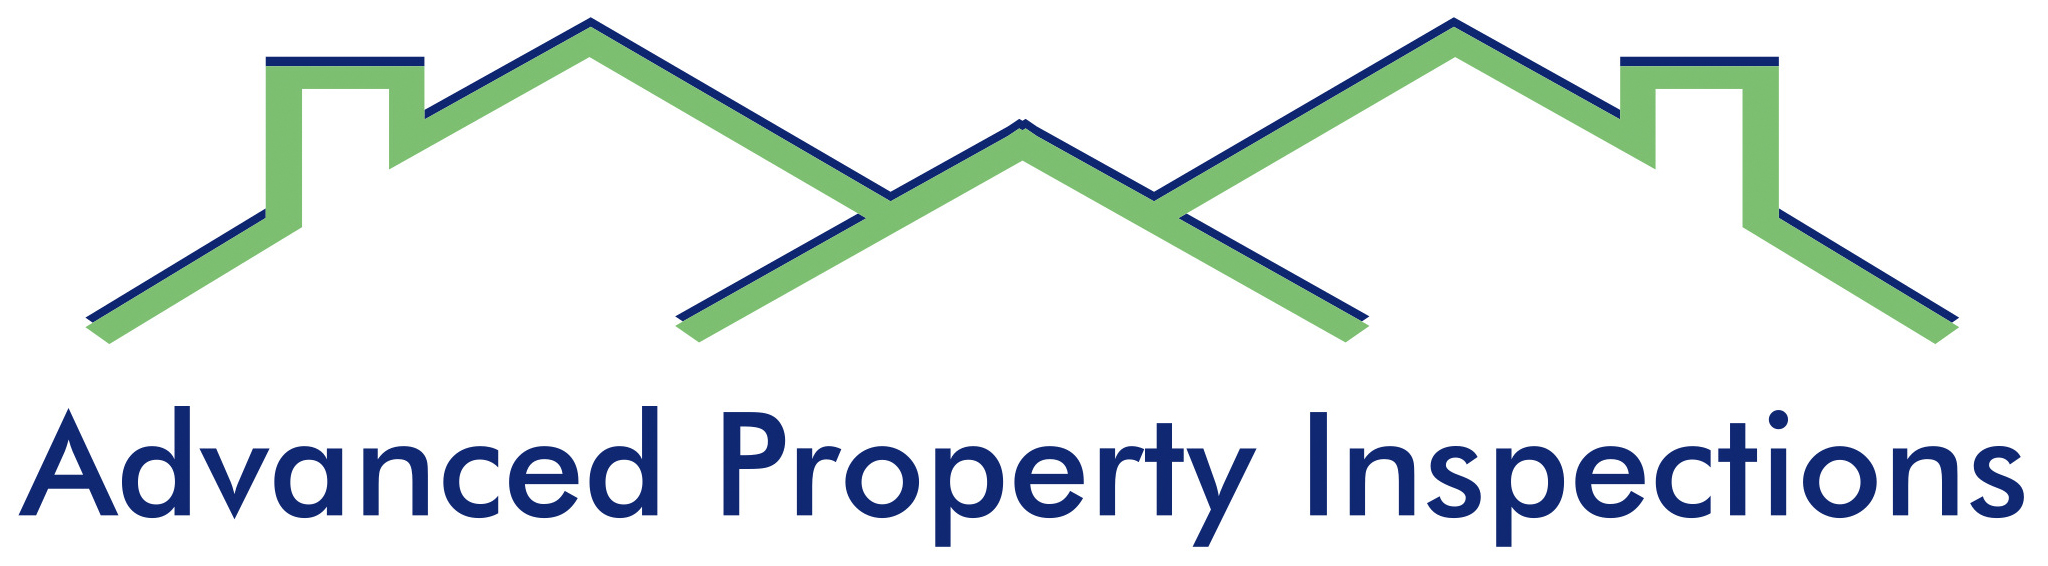 Advanced Property Inspections